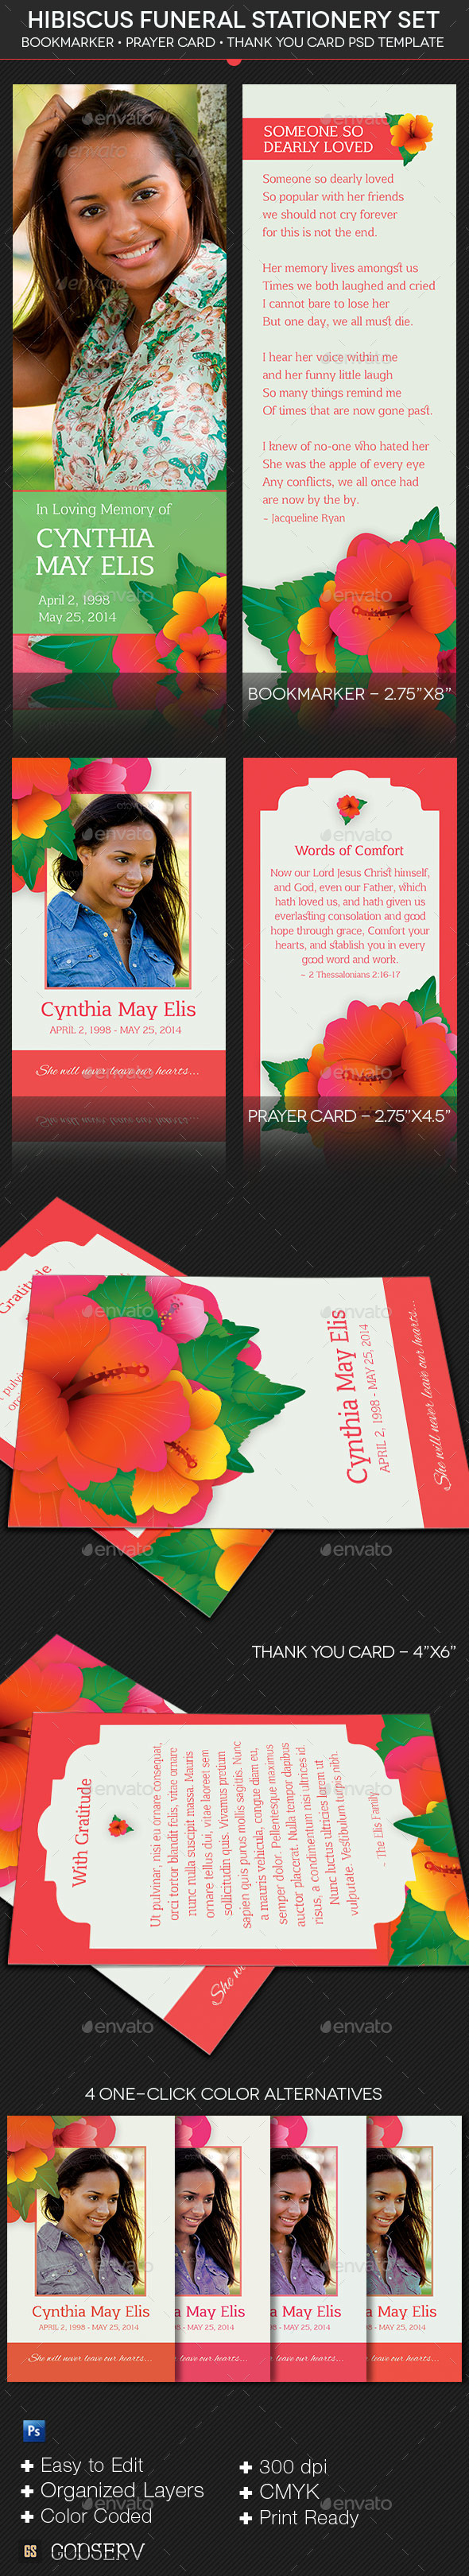 Hibiscus Funeral Stationery Template Set - Stationery Print Templates